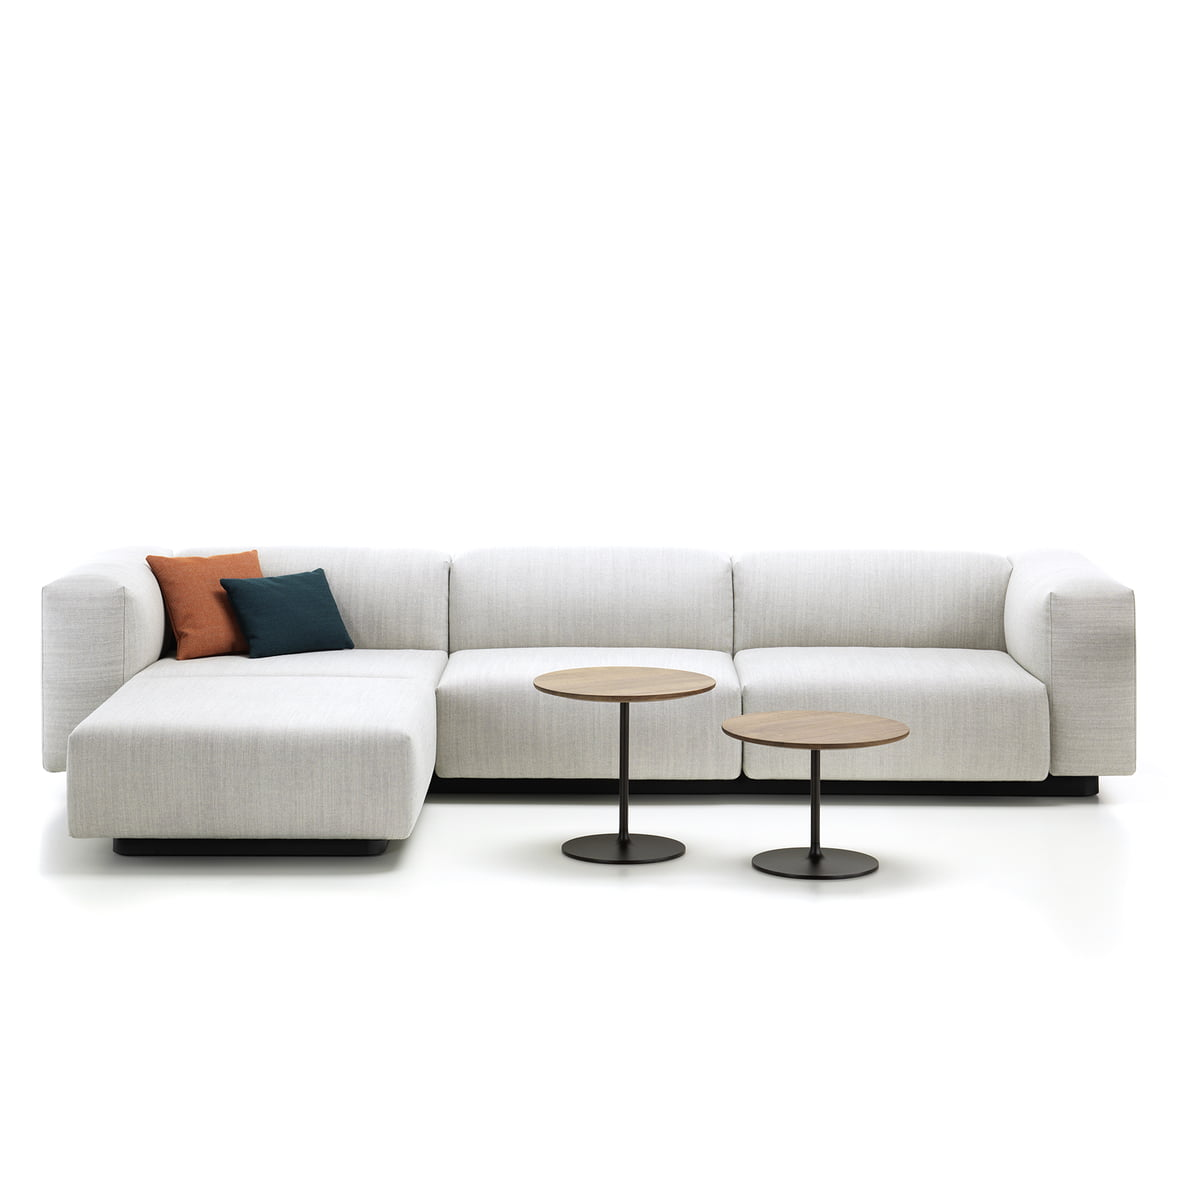 Modular Furniture Sofa: Sofa Modular Gus Mix Modular Sofa 2 Pieces The Century